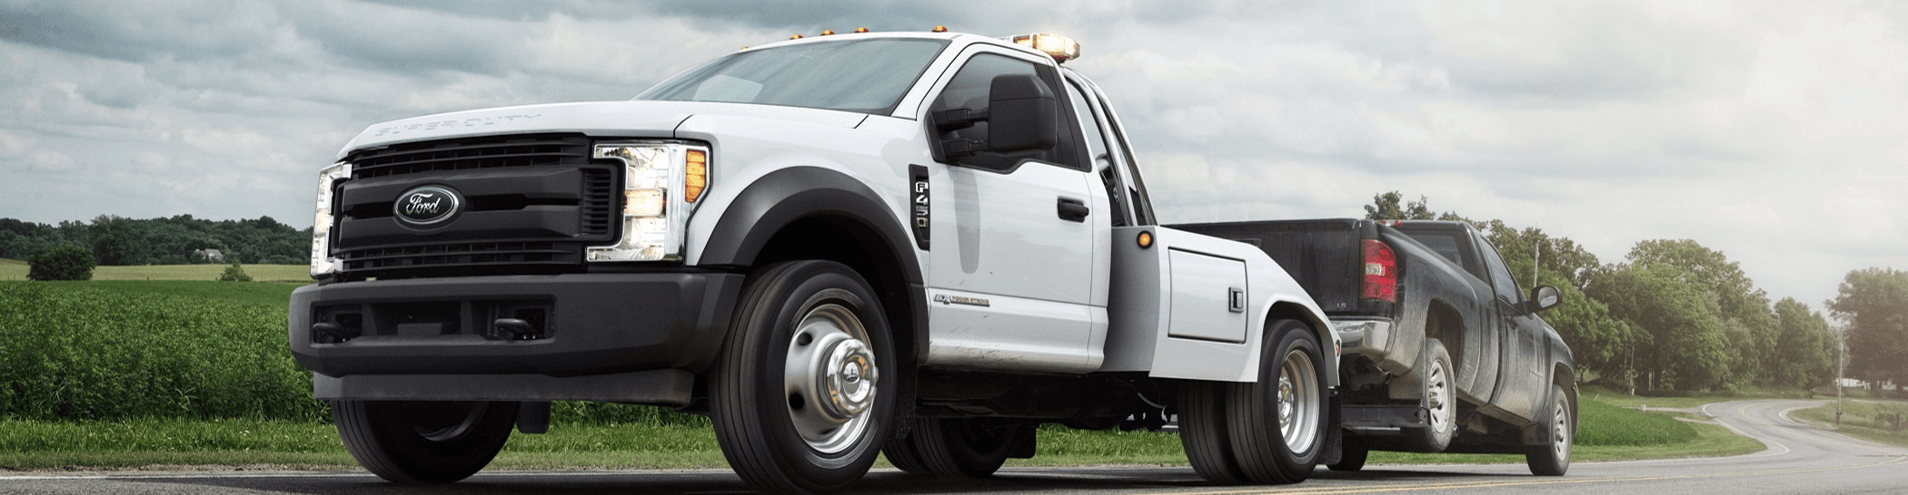 White F-450 Tow Truck